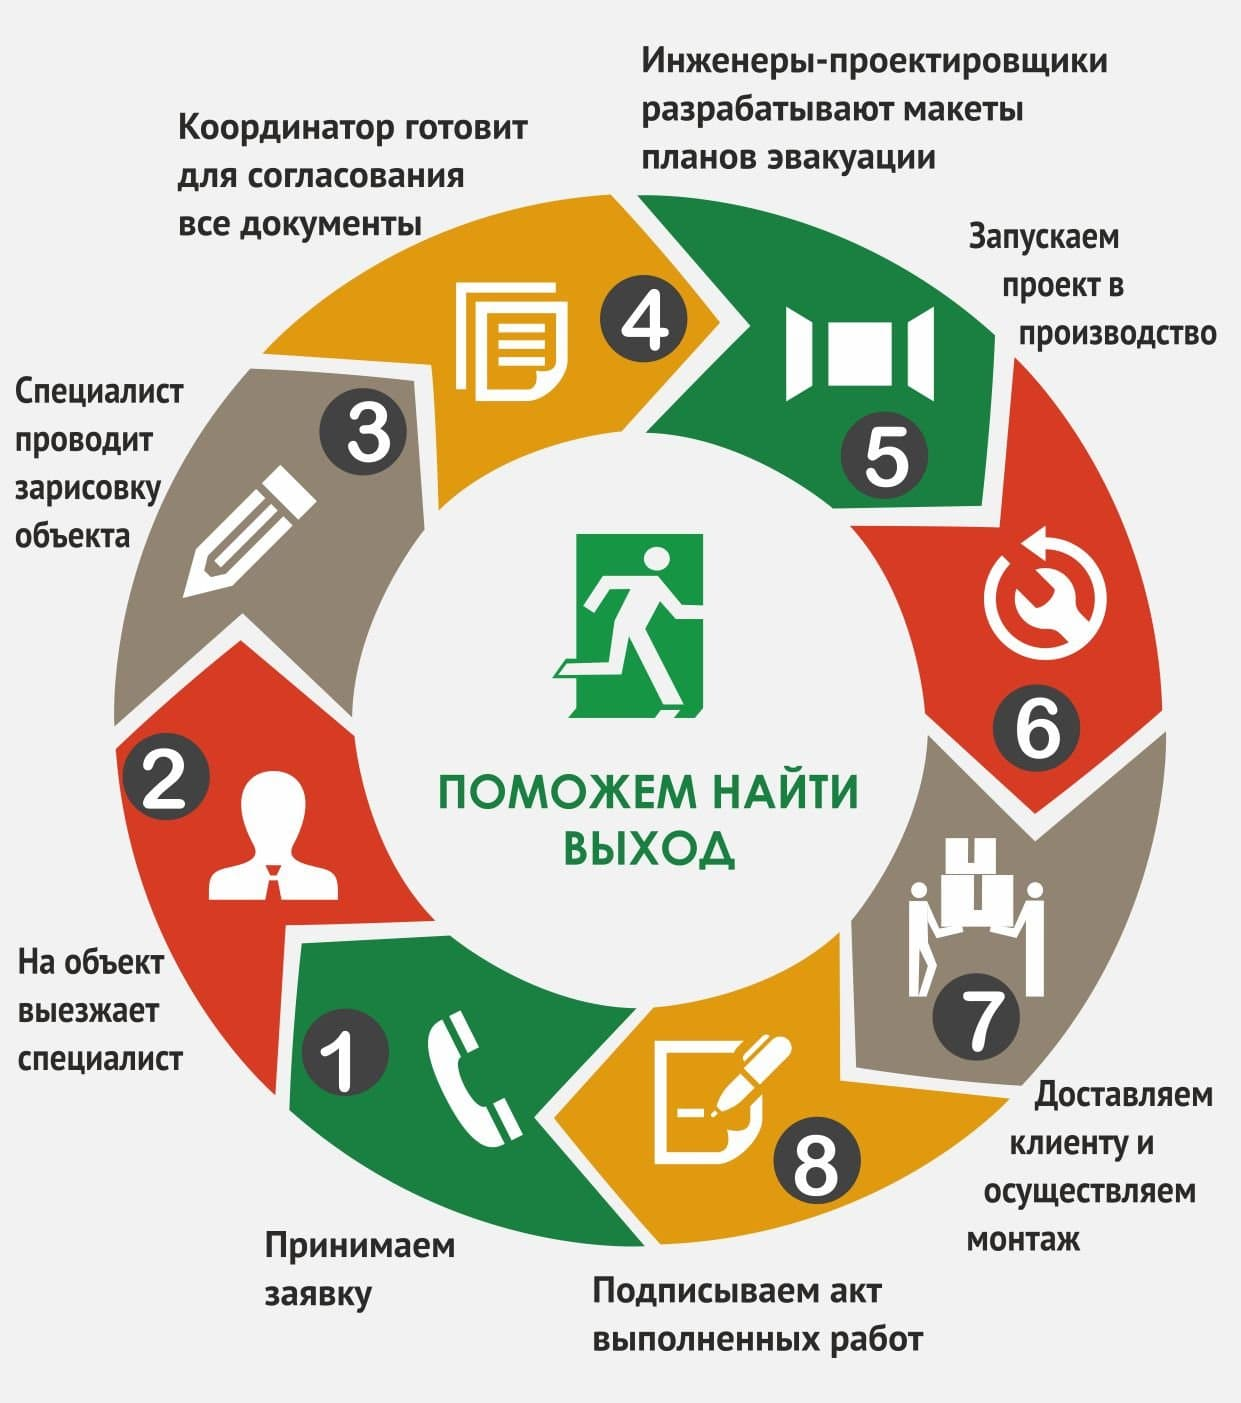 http://msc01.ru/images/upload/about3.jpg